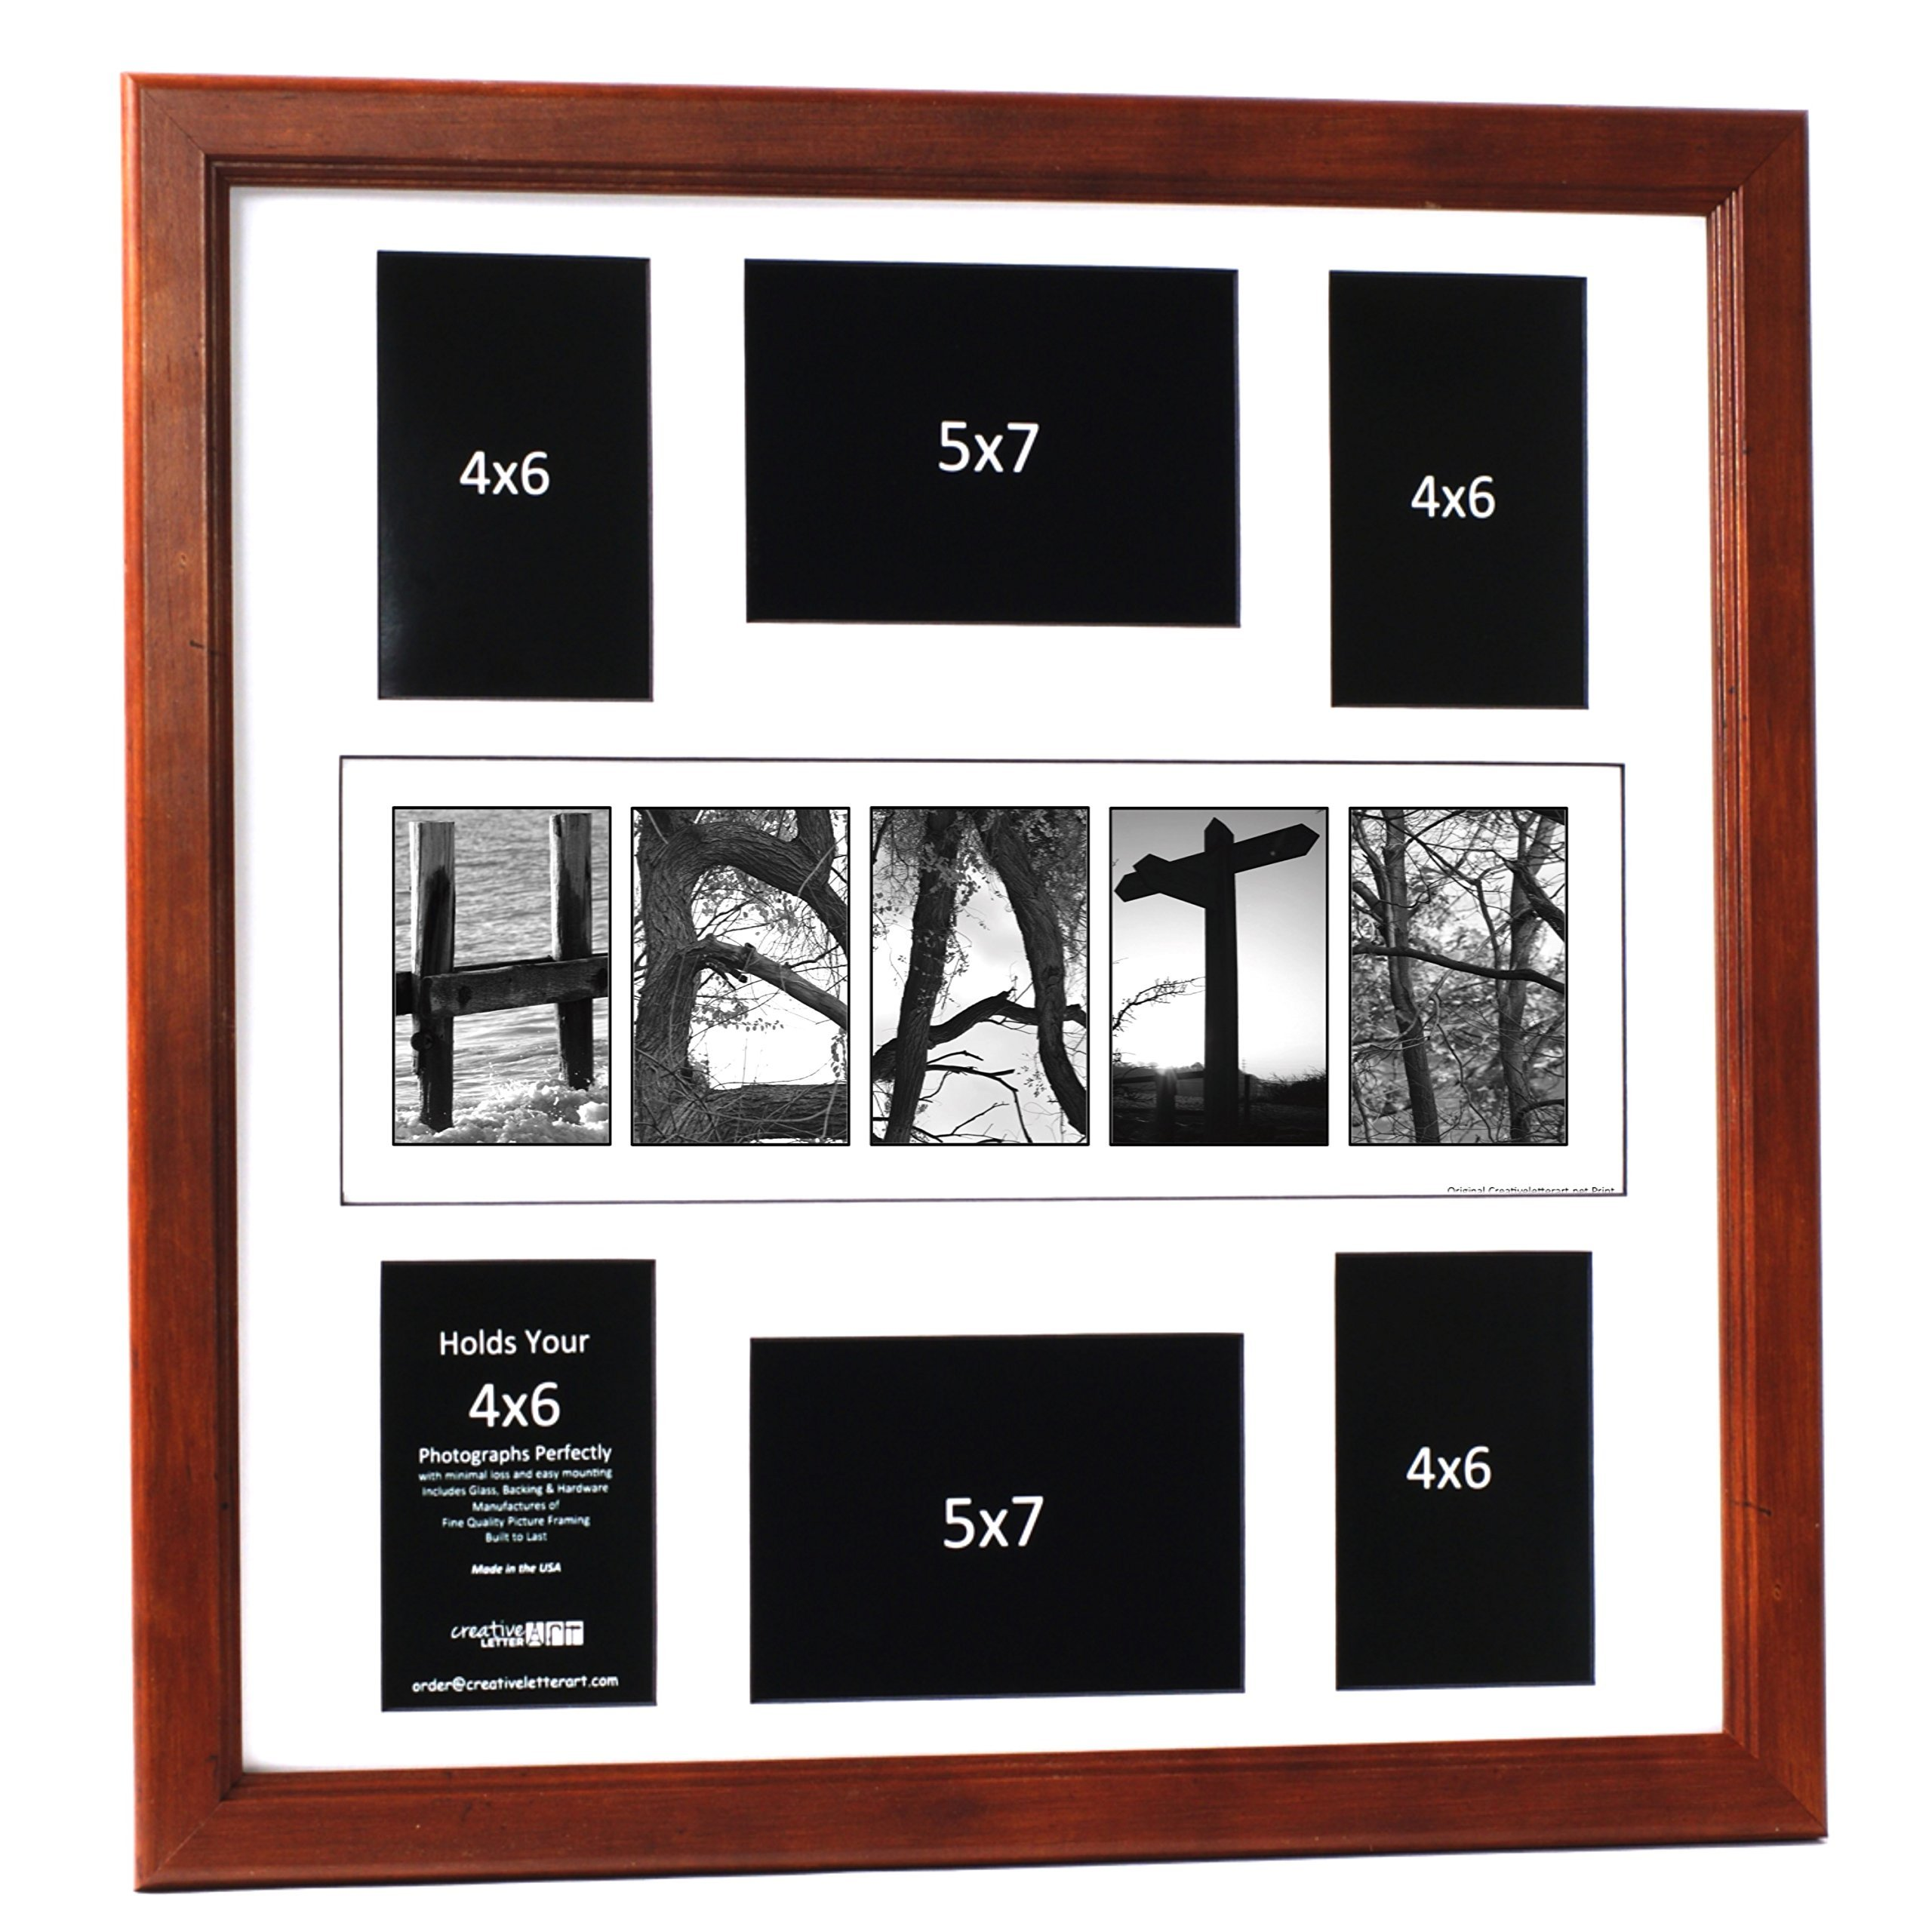 Wedding Bride and Groom Personalized 20 by 20 inch Guest Book Registry Nature Related Name Collage including Frame, 6 Opening Name Collage for 4x6 and 5x7 Photographs with Signature Board